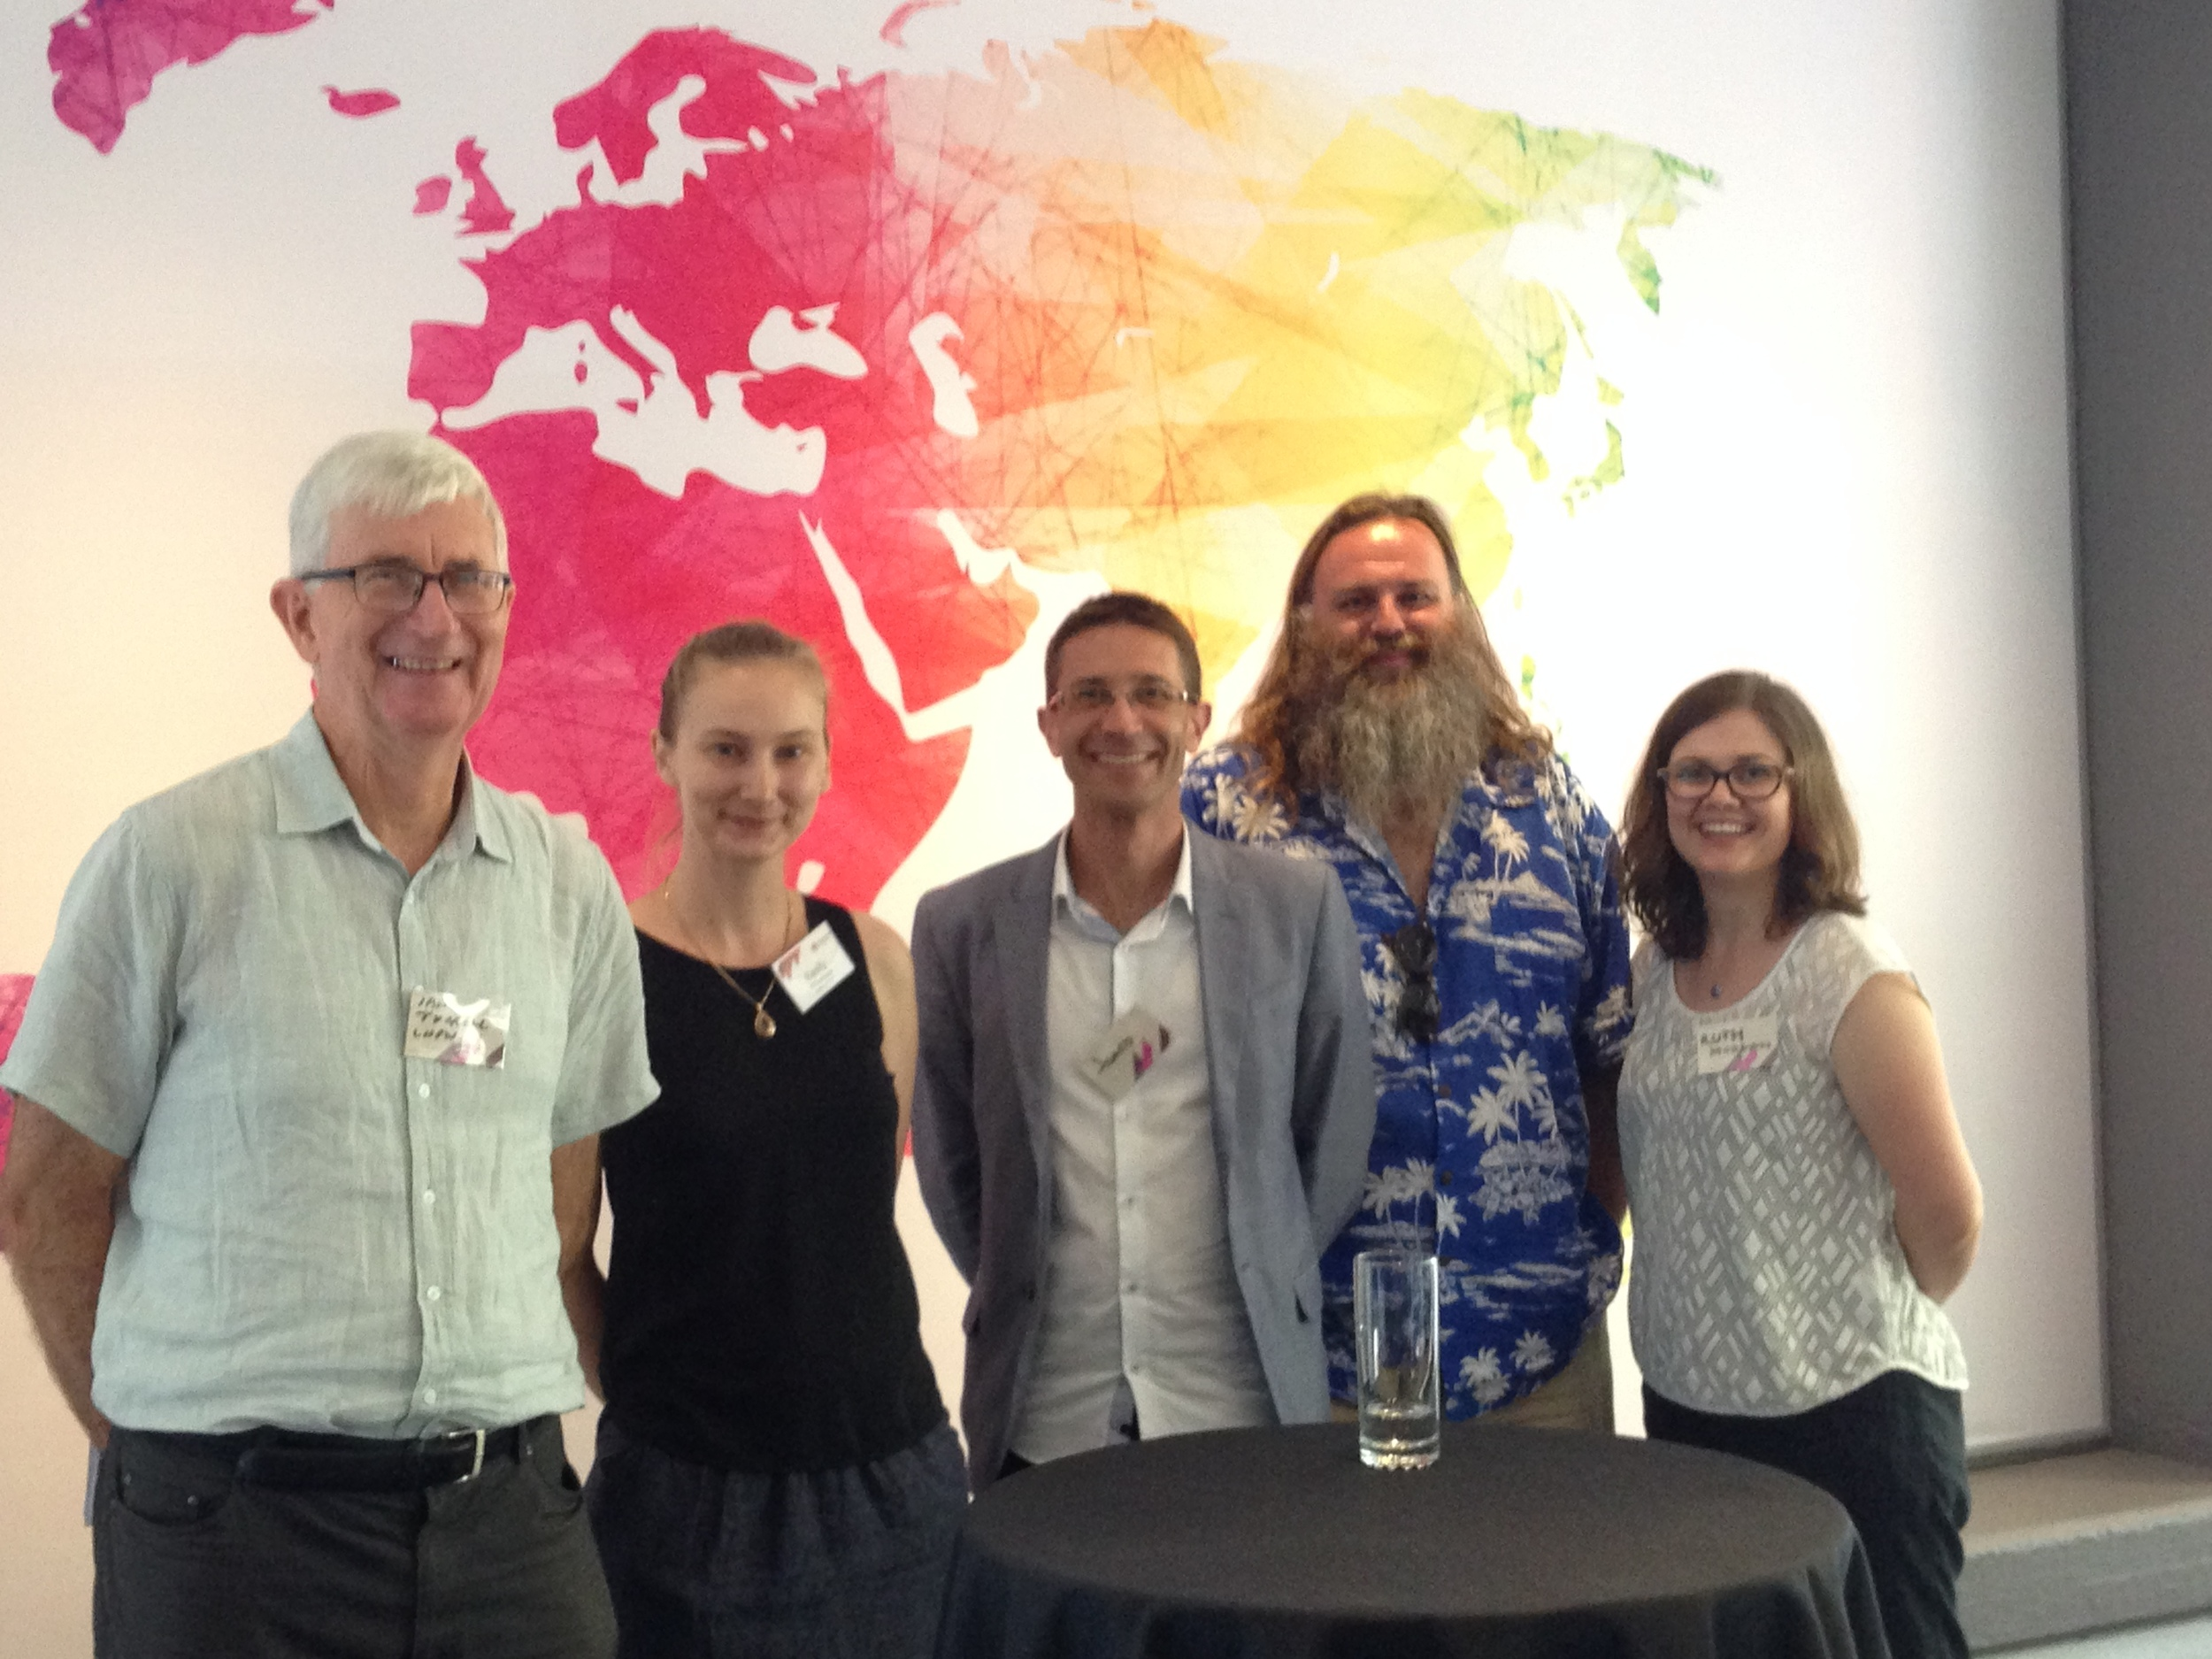 Ian Tyrrell (University of New South Wales) launches  Climate, Science, and Colonization: Histories from Australia and New Zealand  (Palgrave, 2014), edited by James Beattie, conference co-convenor Emily O'Gorman, and Matthew Henry. L-R: Tyrrell, O'Gorman, Beattie, and contributors Chris O'Brien and Ruth Morgan. [Photo by conference co-convenor Alessandro Antonello]